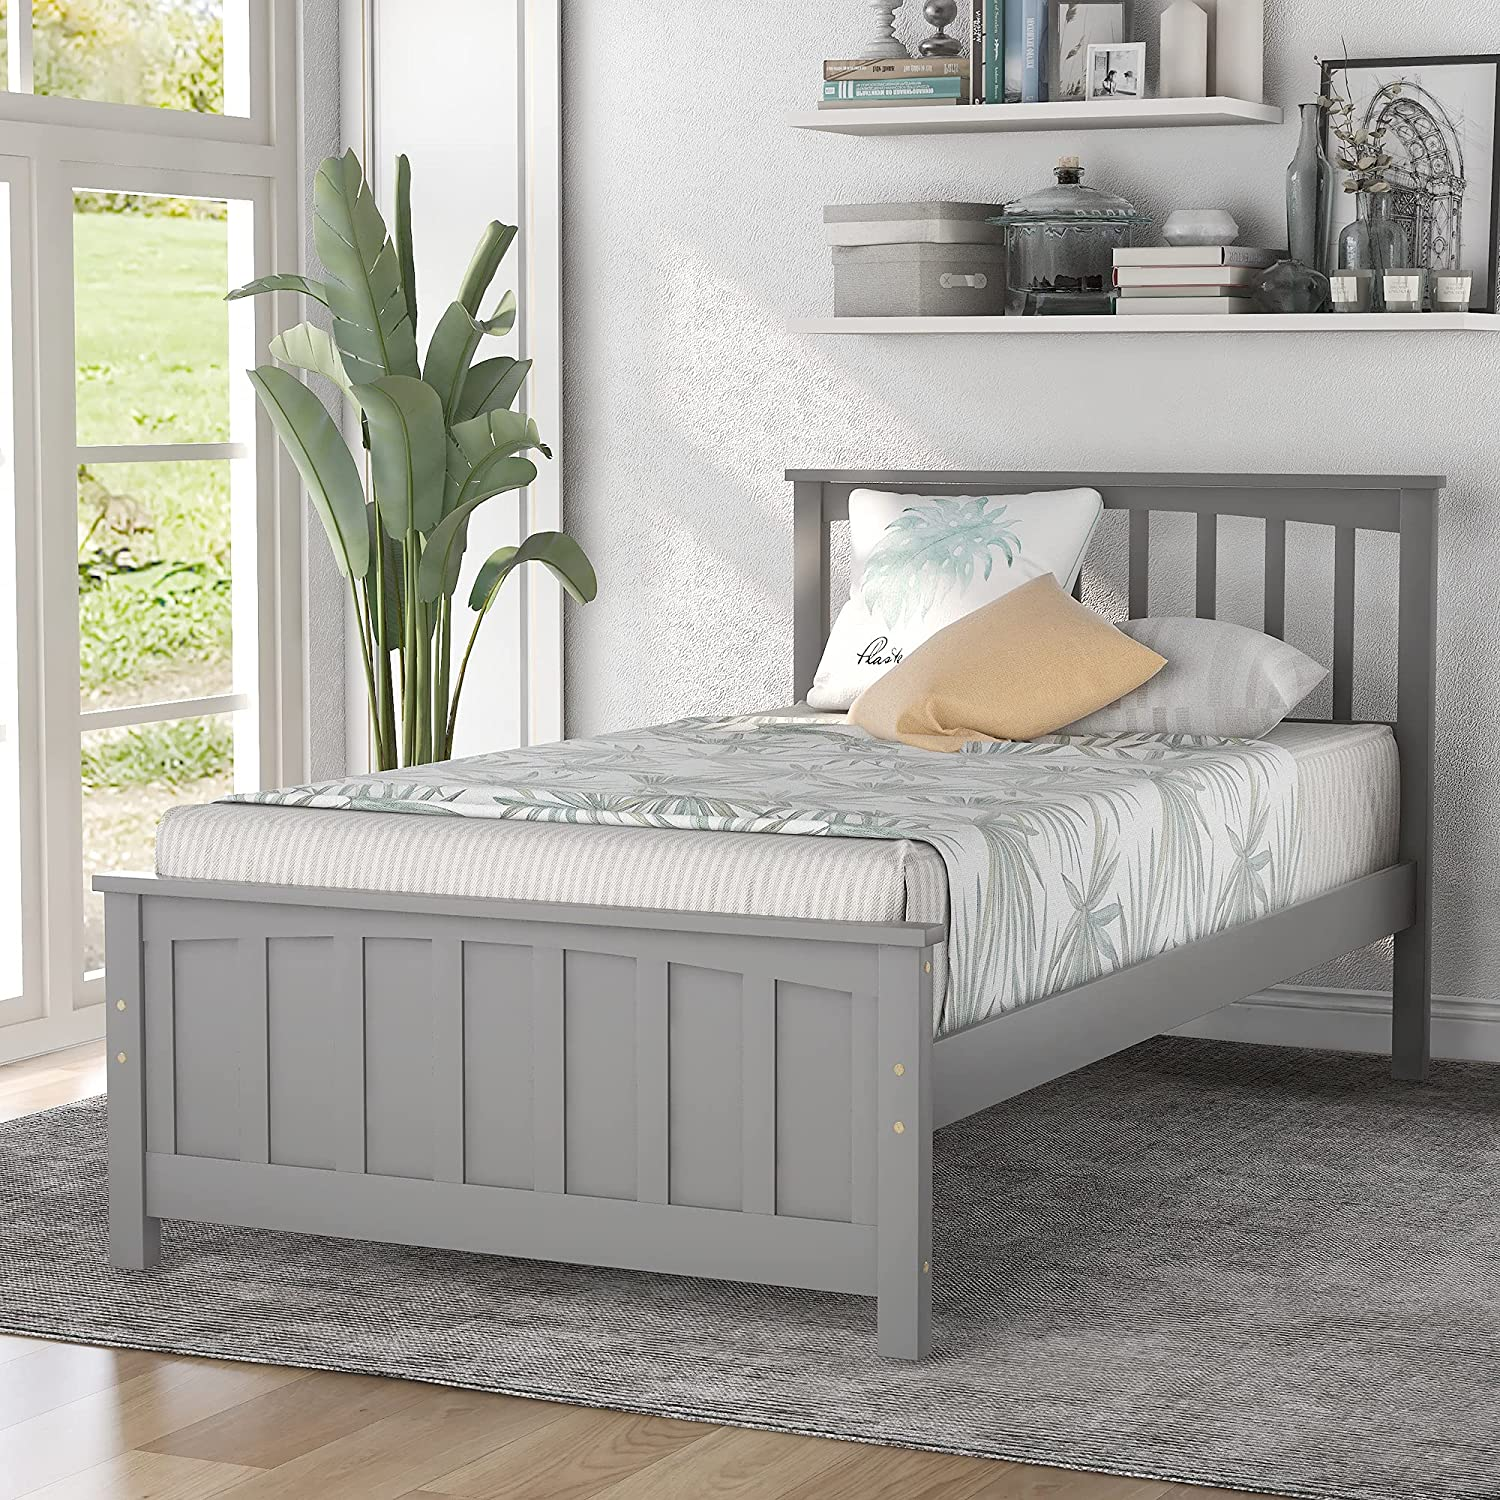 Industry No. 1 Solid Wood Jacksonville Mall Twin Size Platform Bed Frame with Headboard